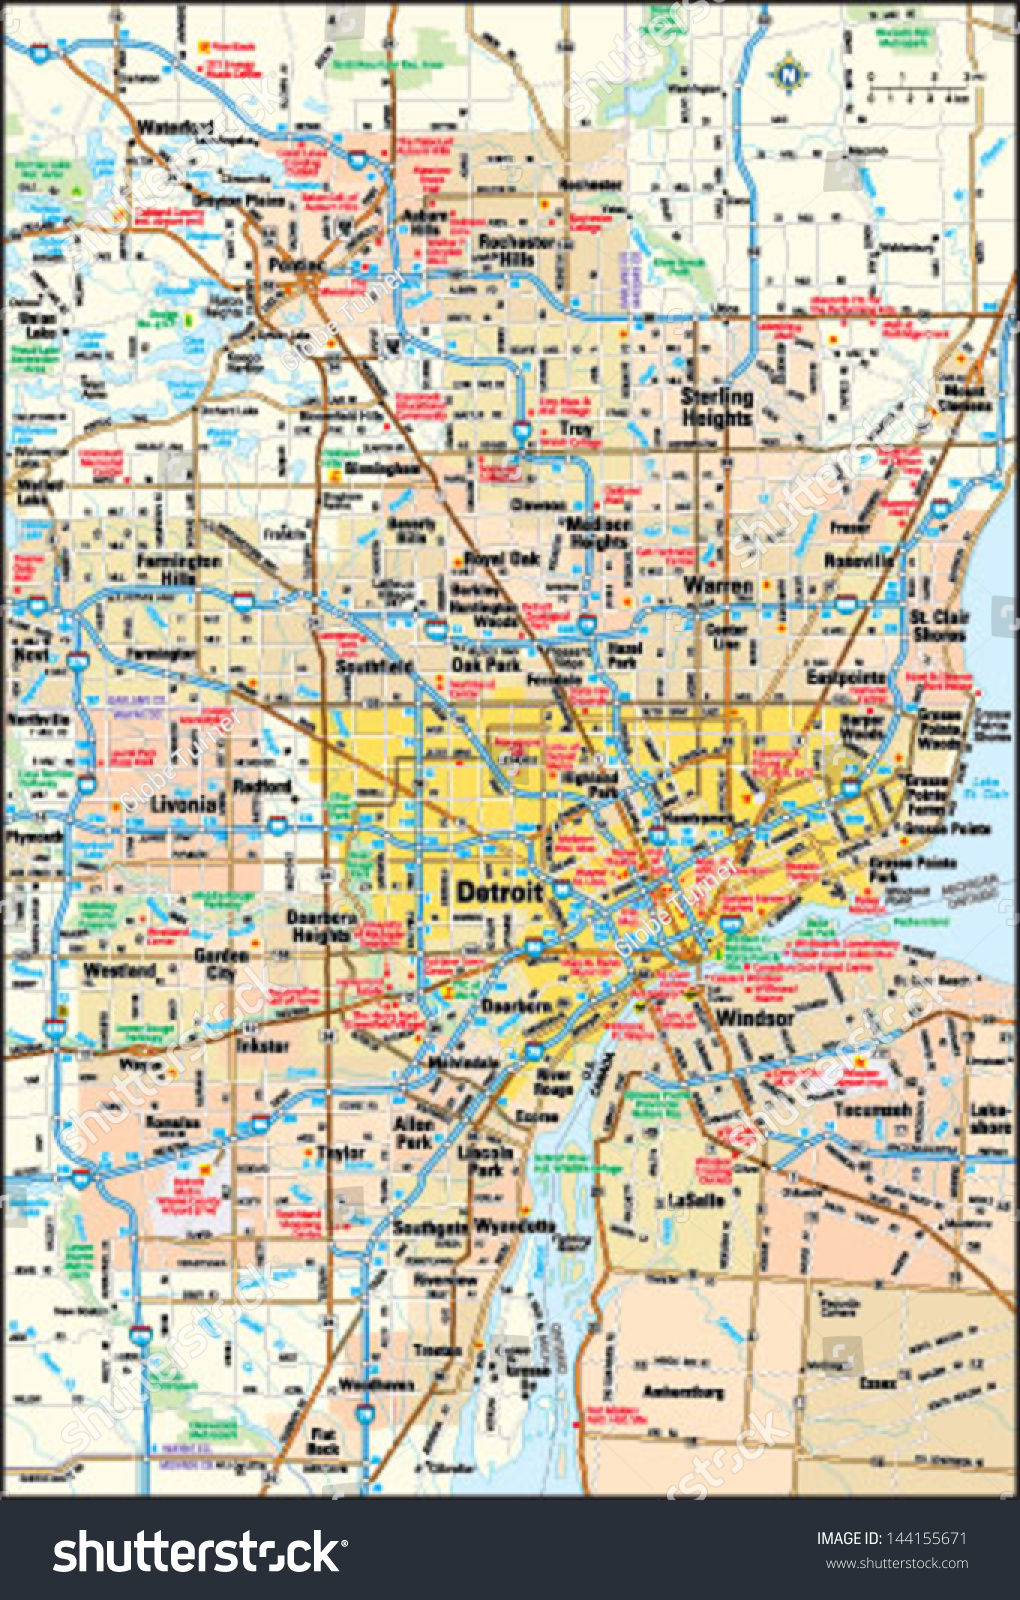 Detroit, Michigan area map | EZ Canvas